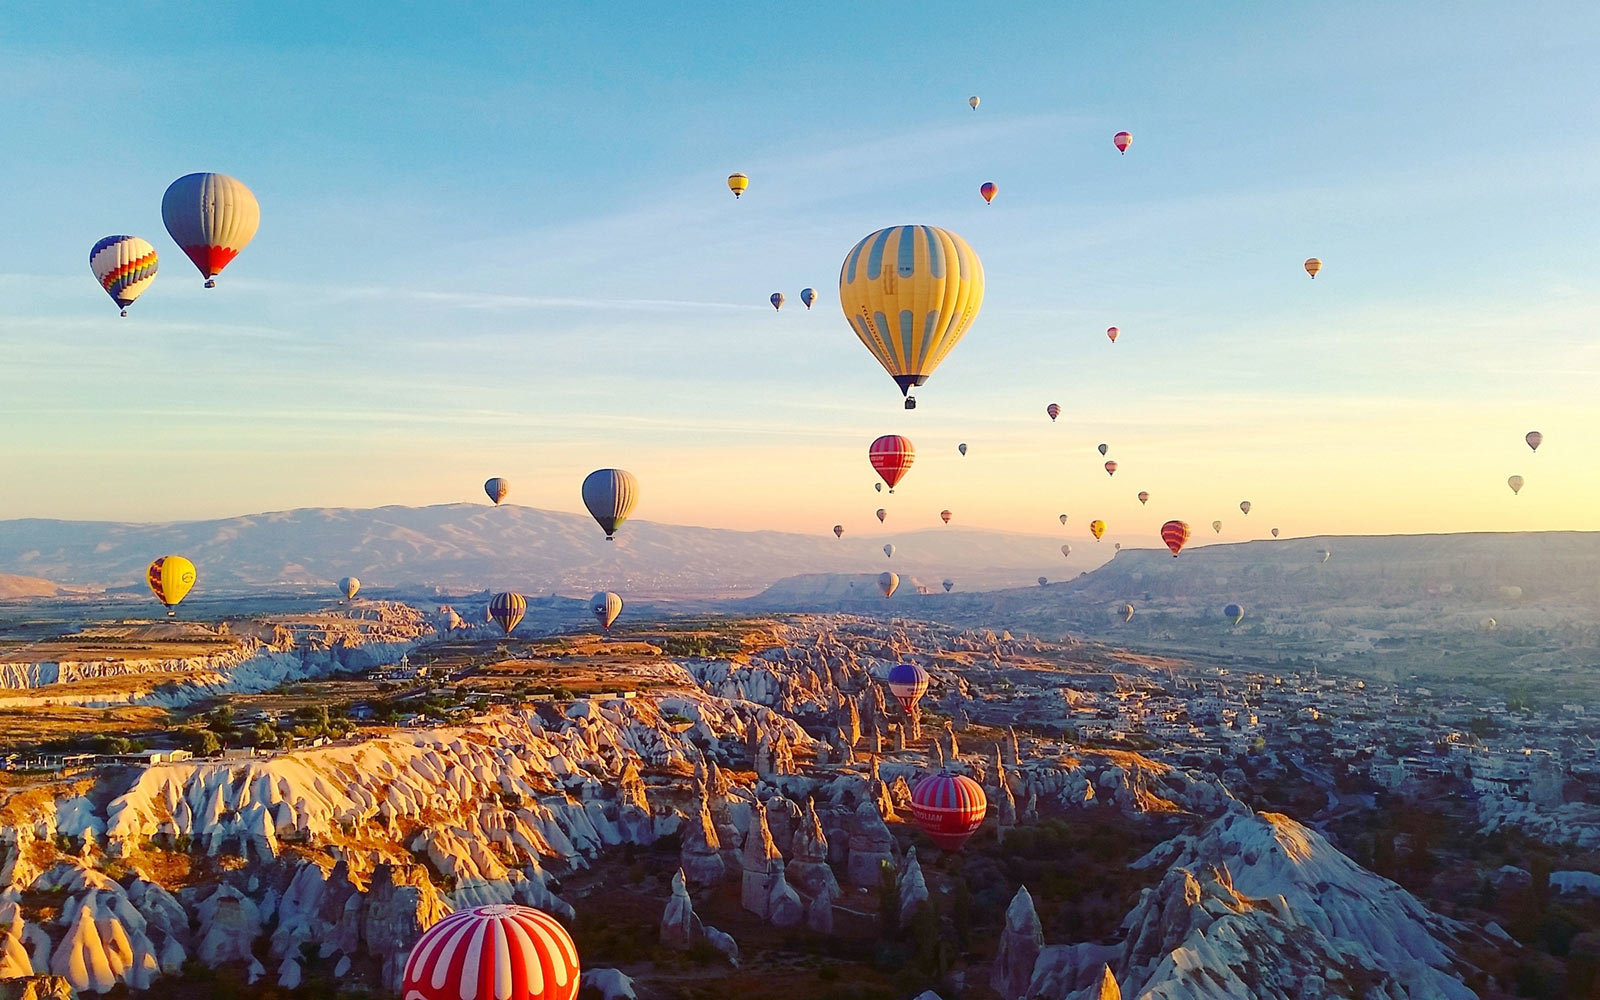 hot-air-balloons-festival-cappadocia-turkey-HOTAIR0605.jpg